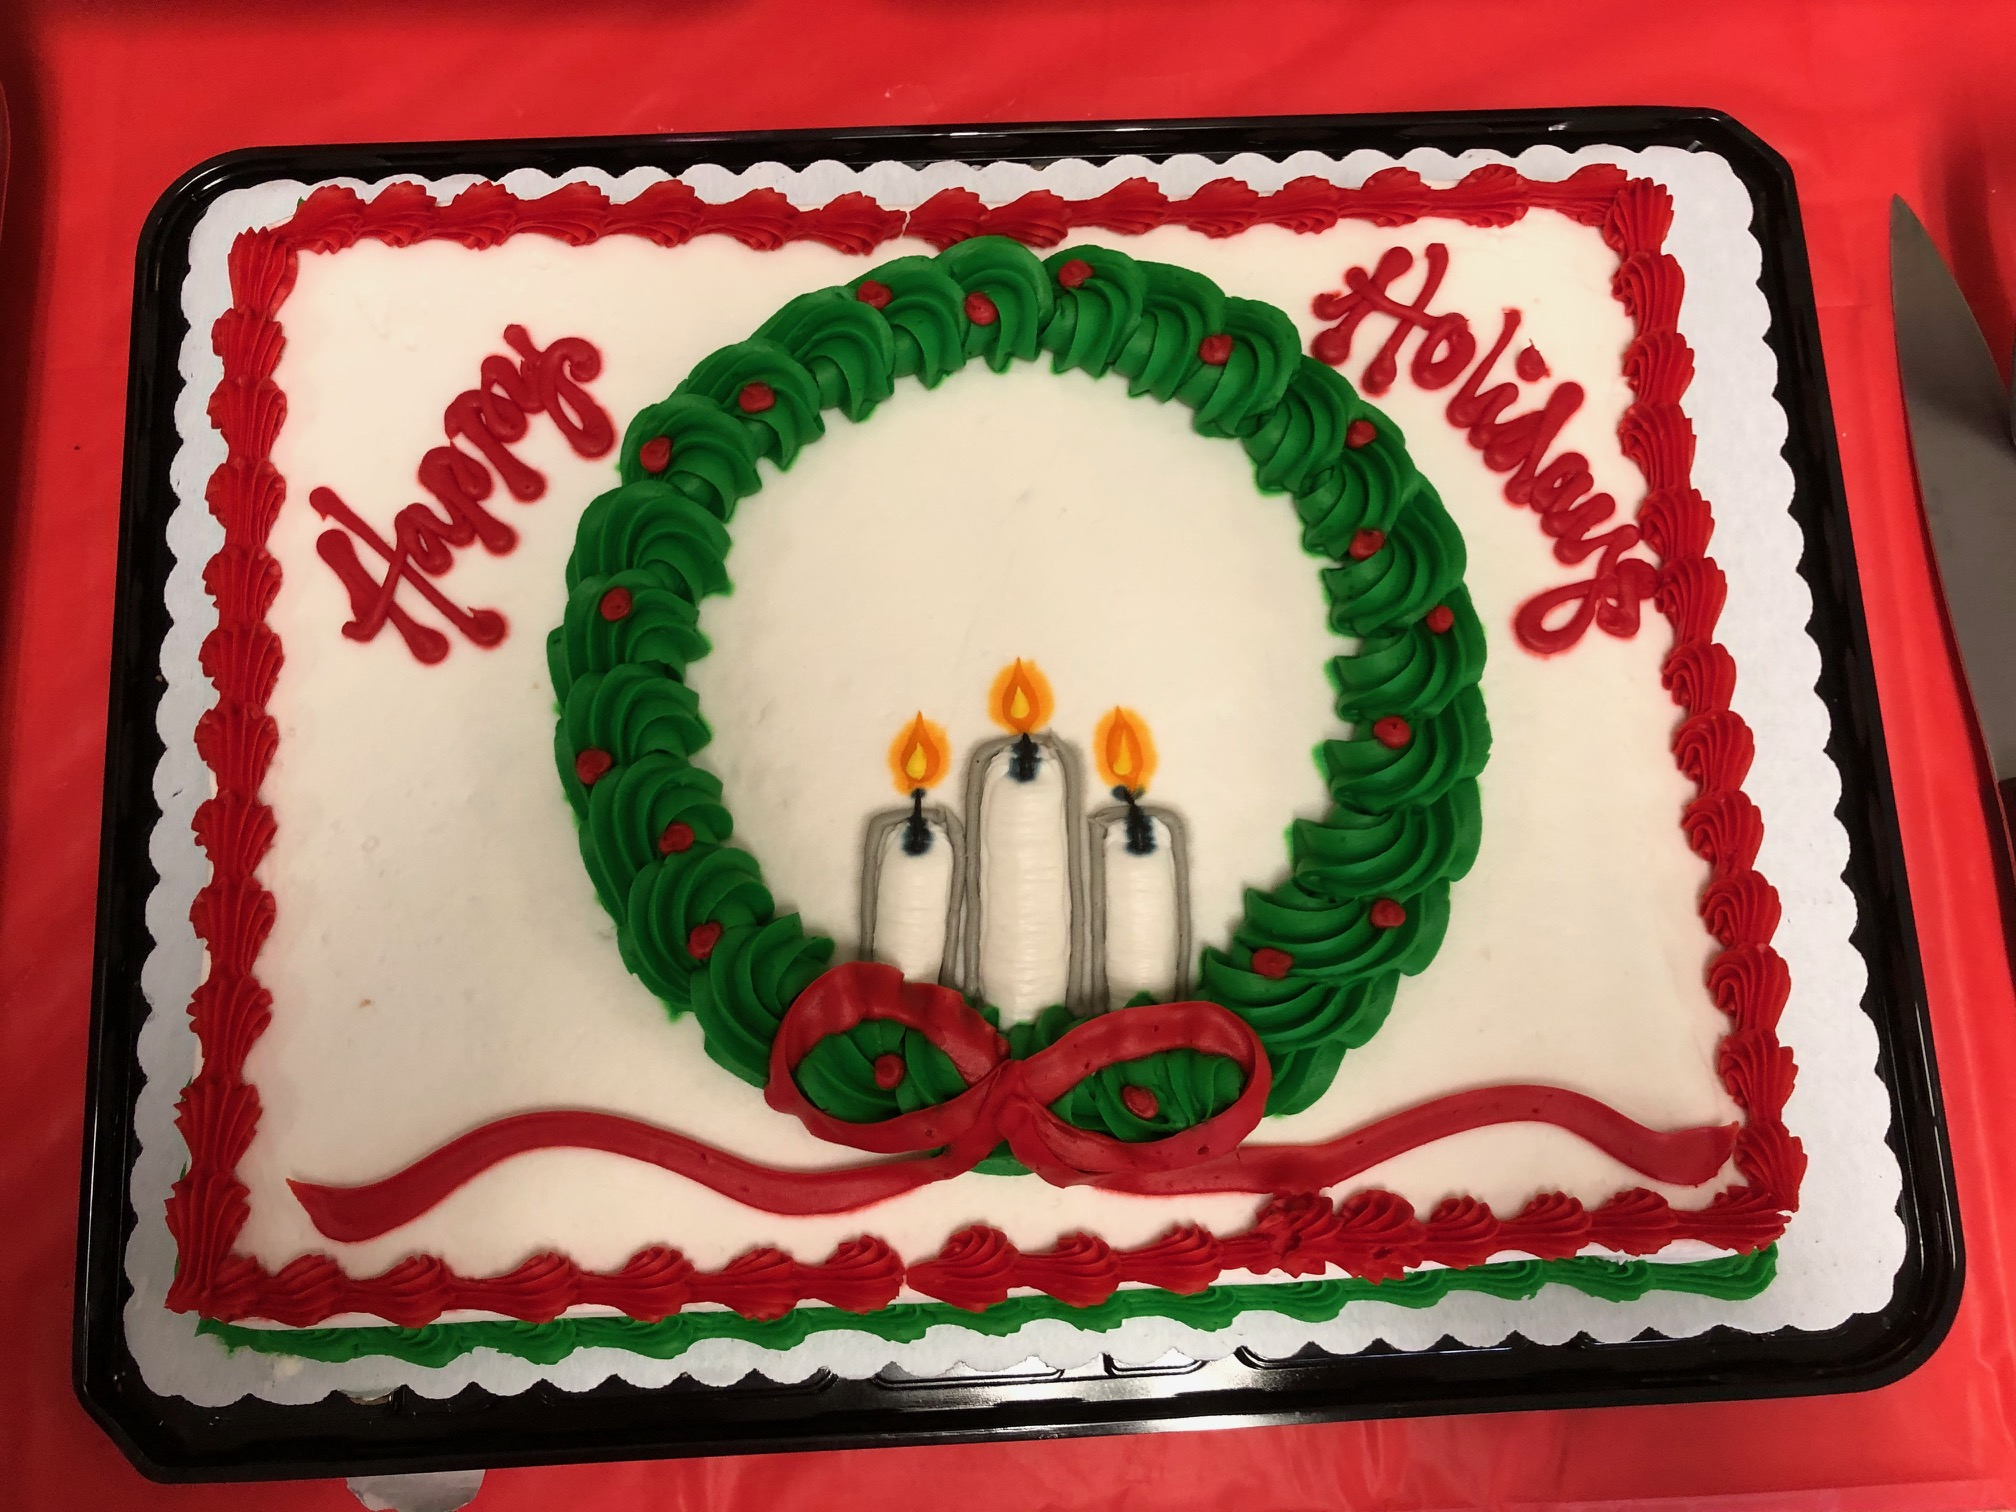 Happy Holidays cake with wreath cancles and ribbon